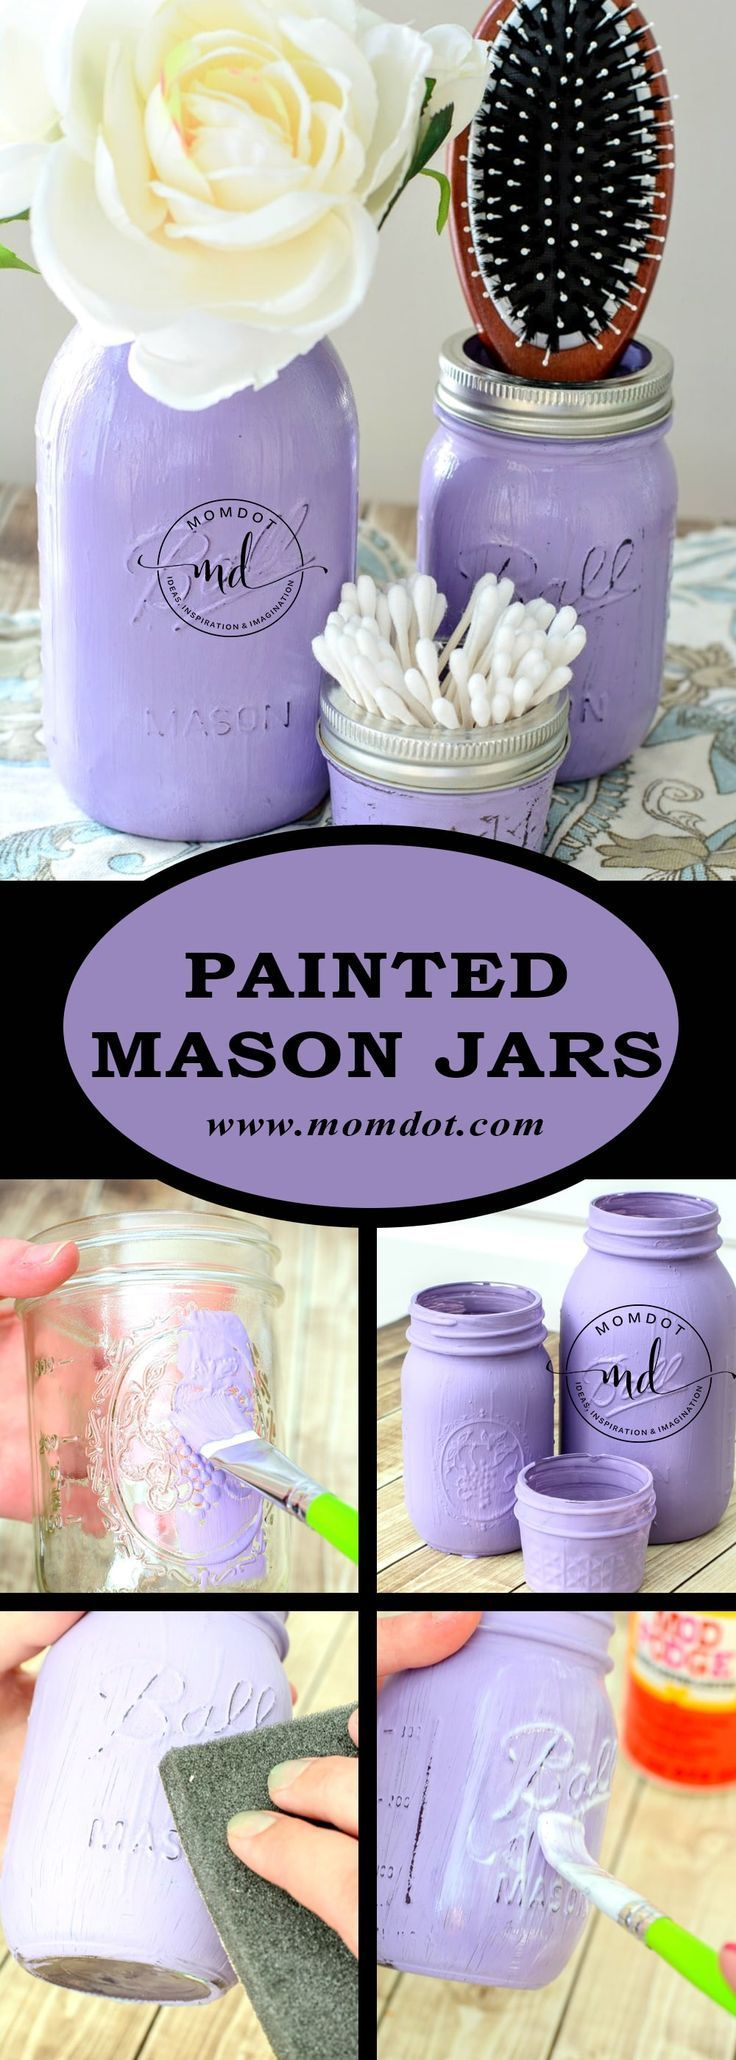 22 mason jar decorados